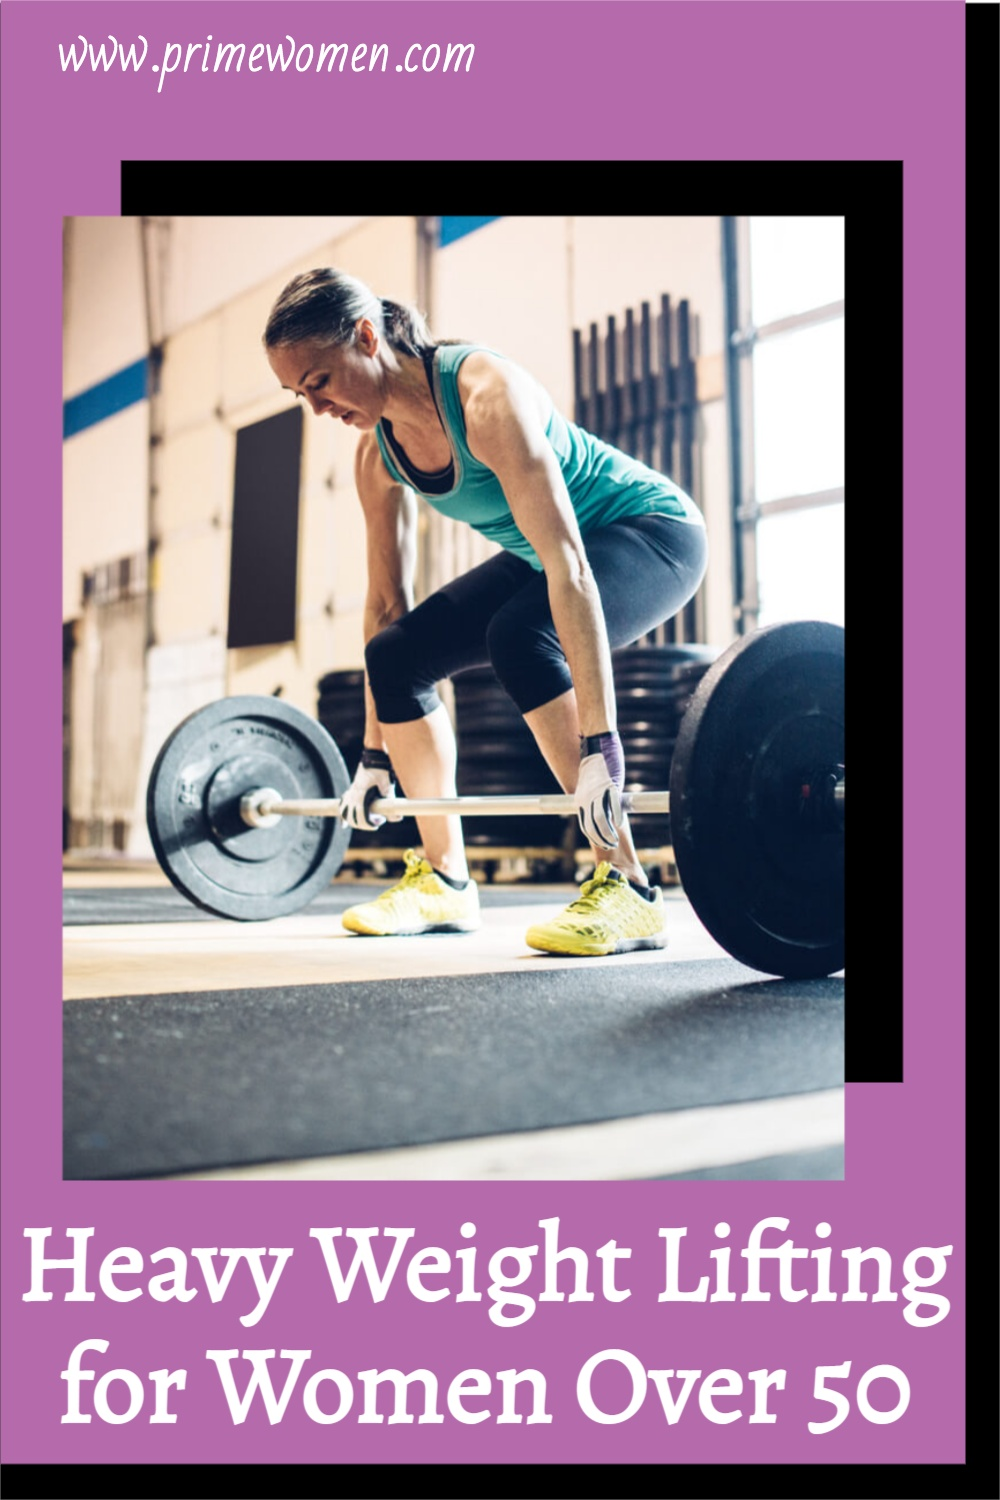 Heavy-Weight-Lifting-for-Women-Over-50